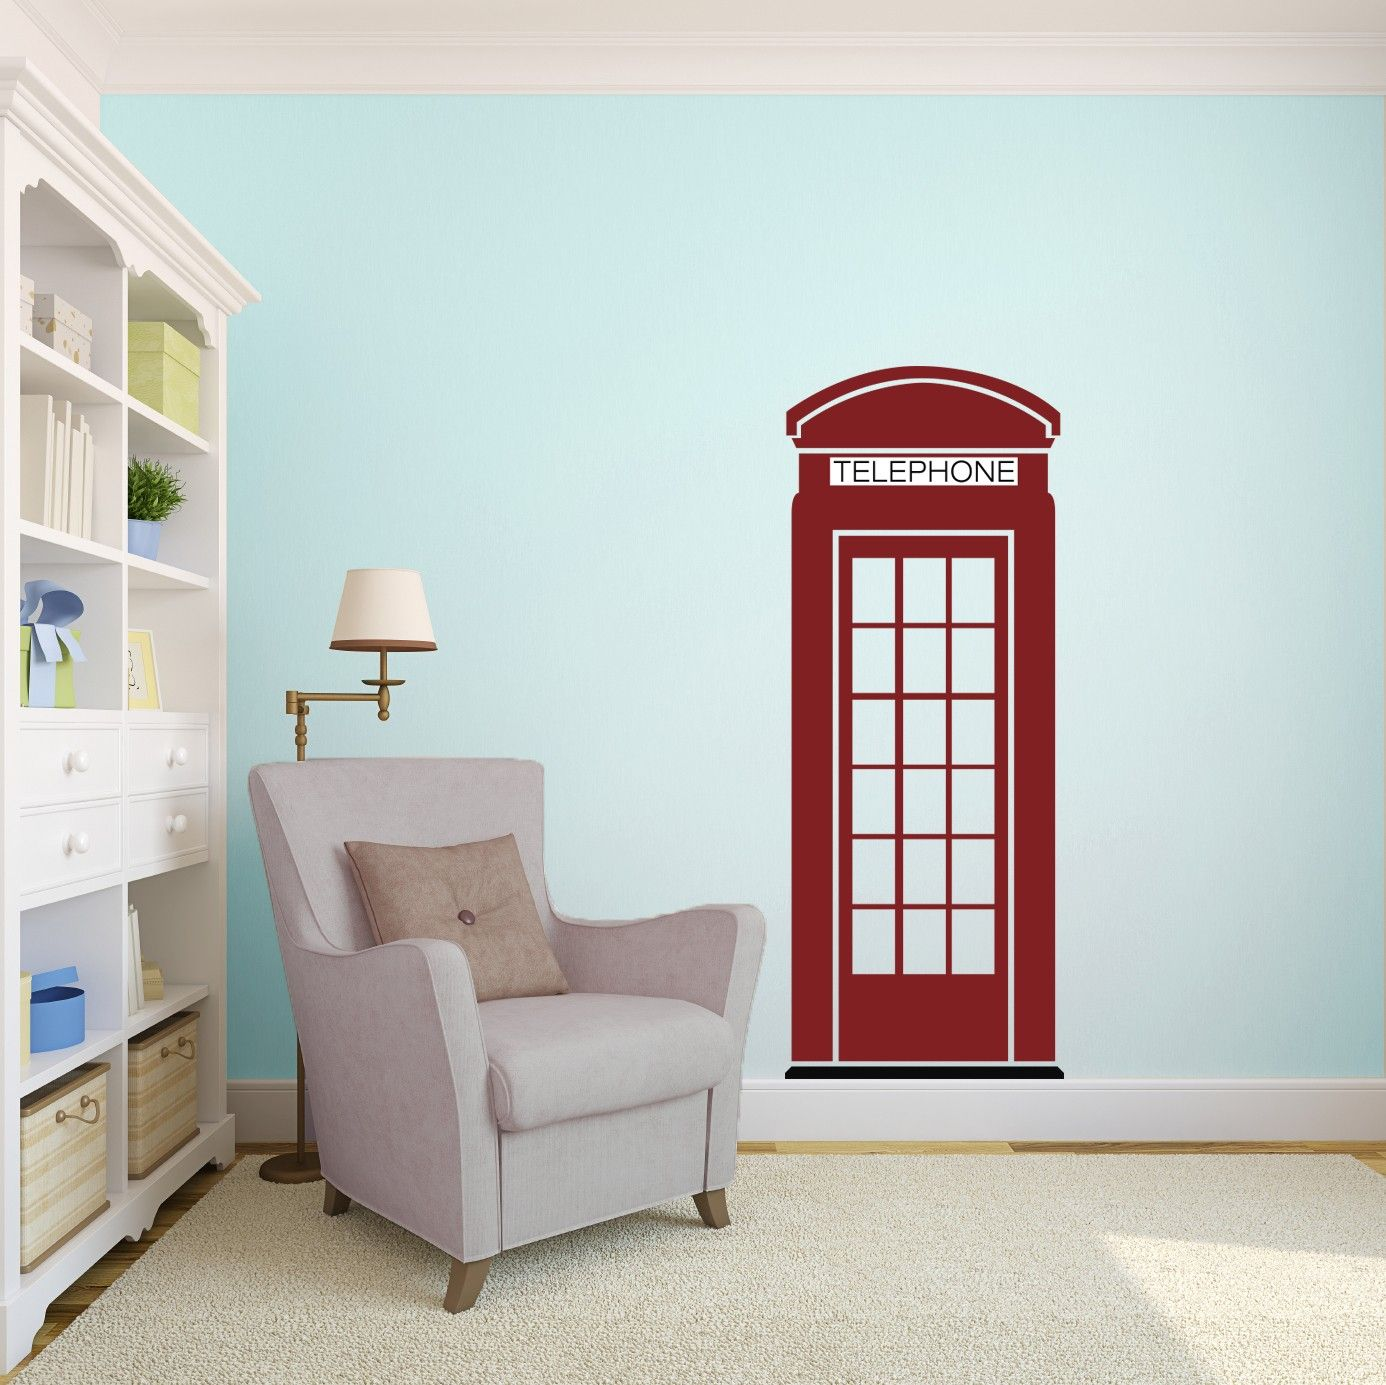 London Phone Booth Wall Art Decal Vinyl Wall Art And Kids Rooms - Custom custom vinyl wall decals uk